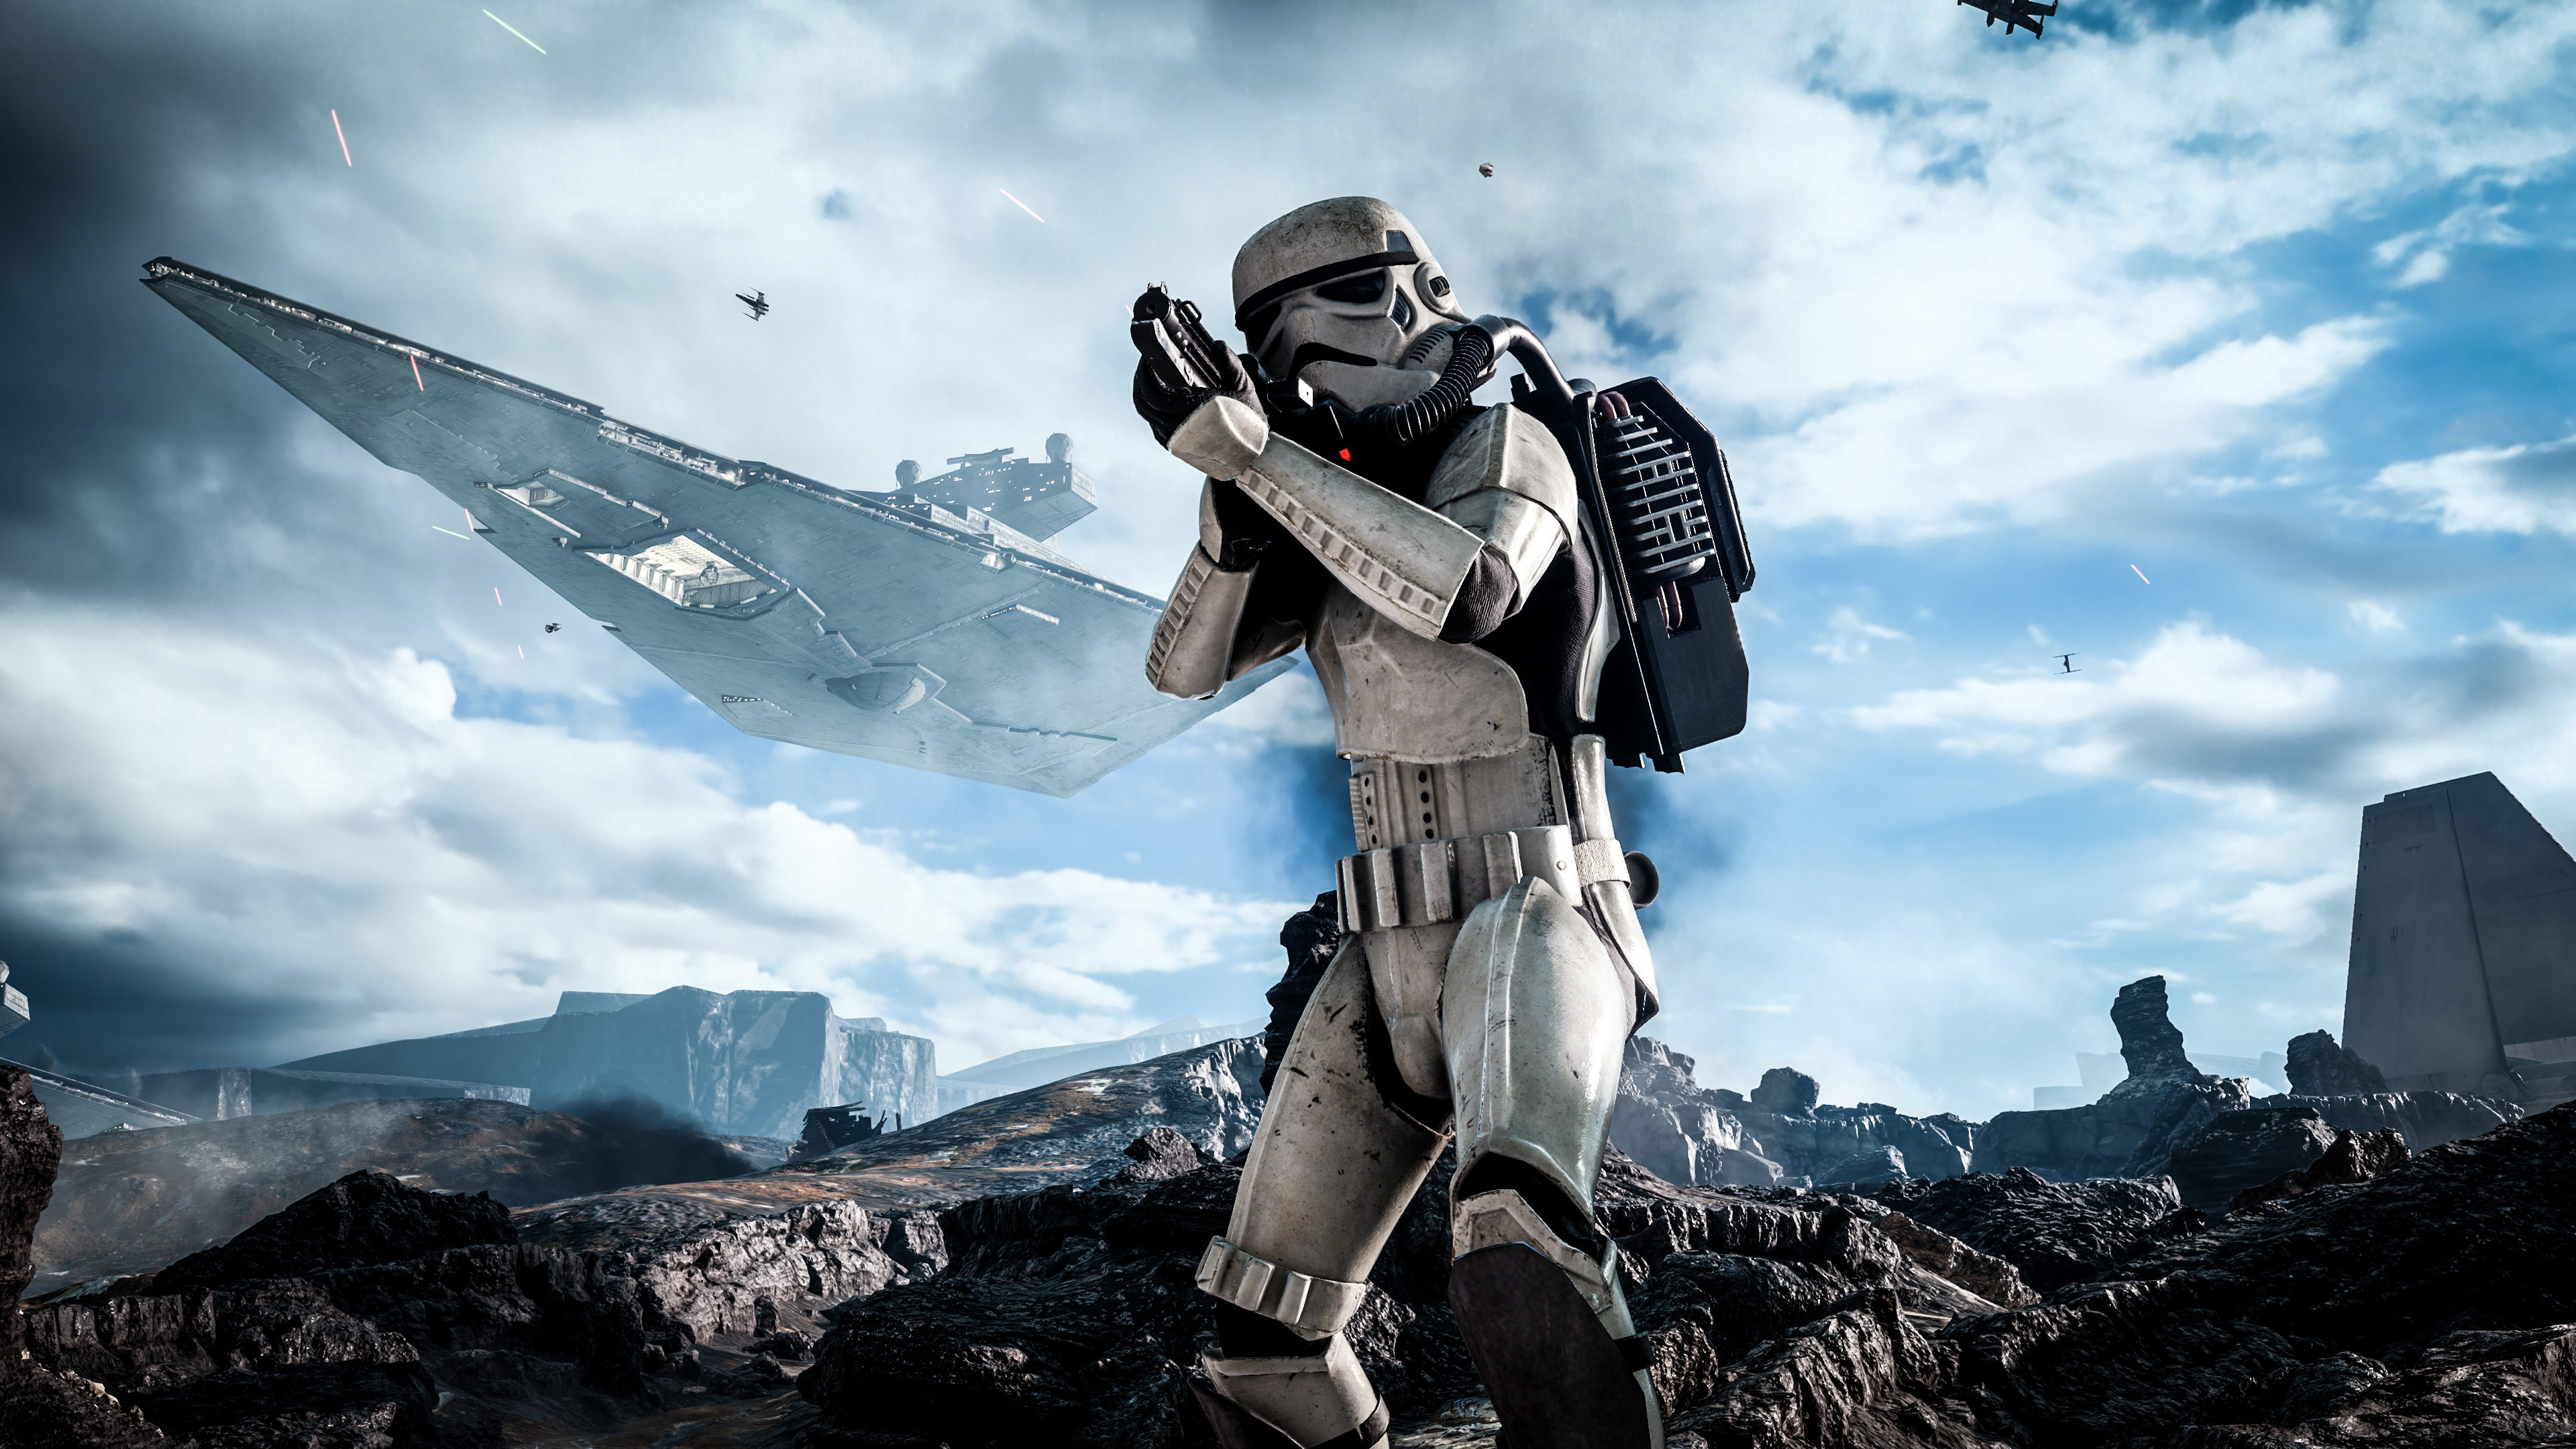 340 Stormtrooper Hd Wallpapers Background Images Wallpaper Abyss